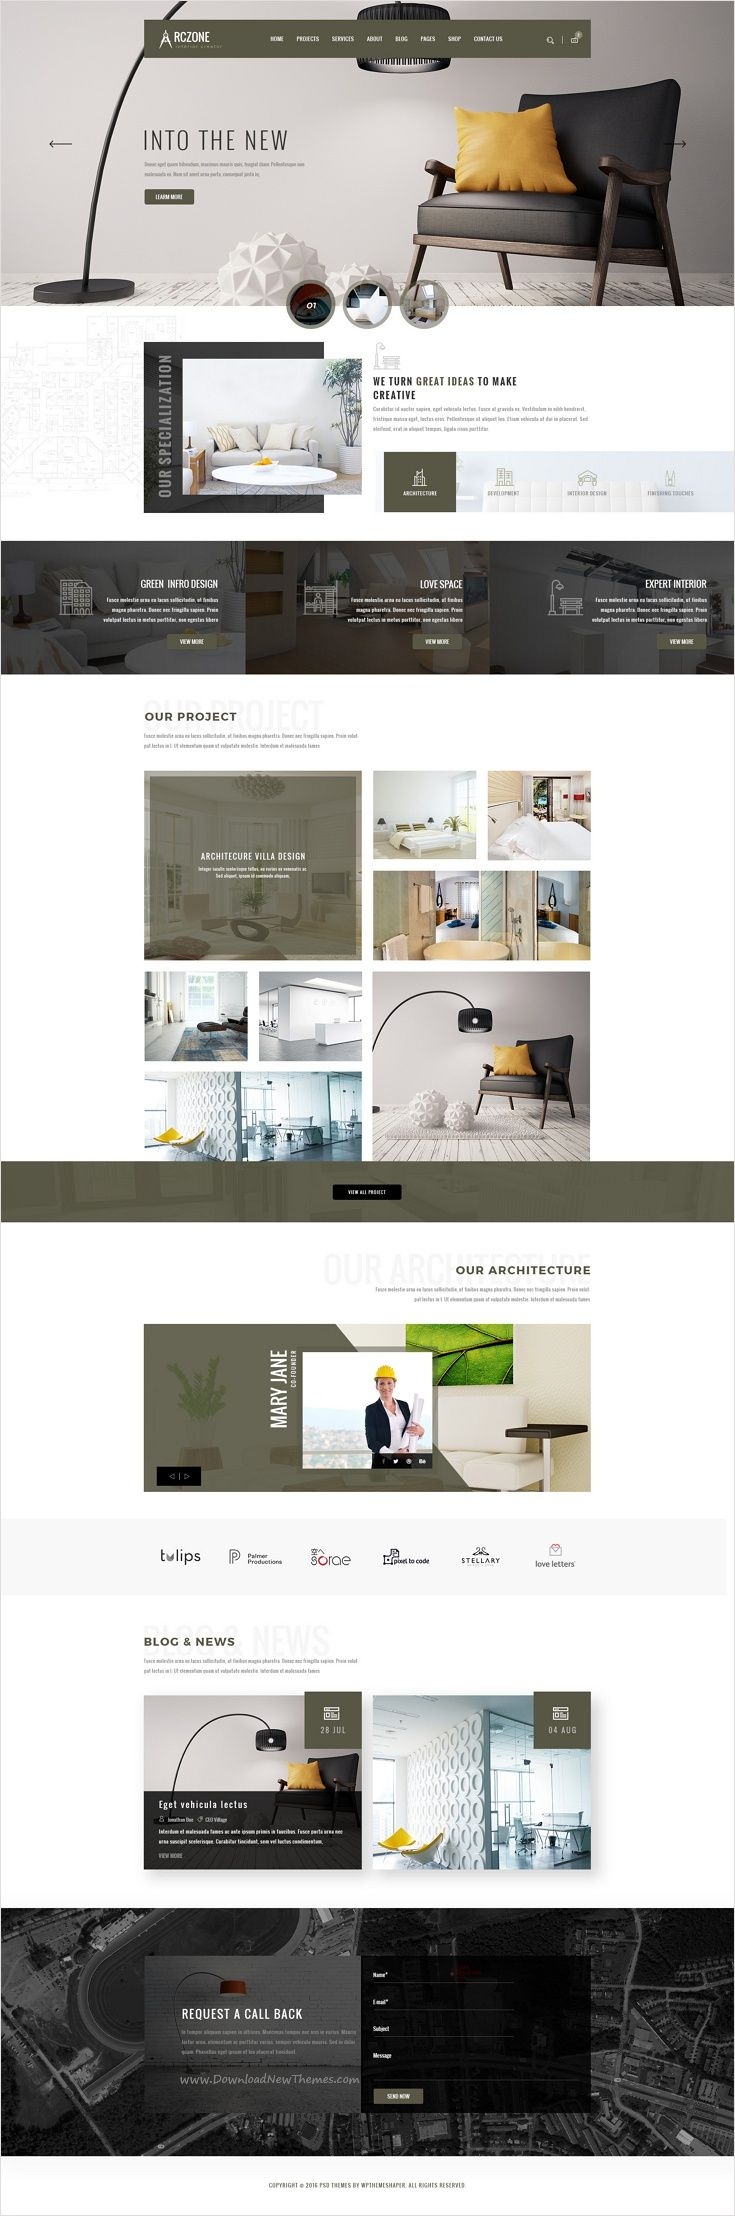 Arczone is beautifully design premium #PSD template for Interior #Design, Decor, #Architecture Business website download now➩ https://themeforest.net/item/arczone-interior-design-decor-architecture-business-template-/17382115?ref=Datasata